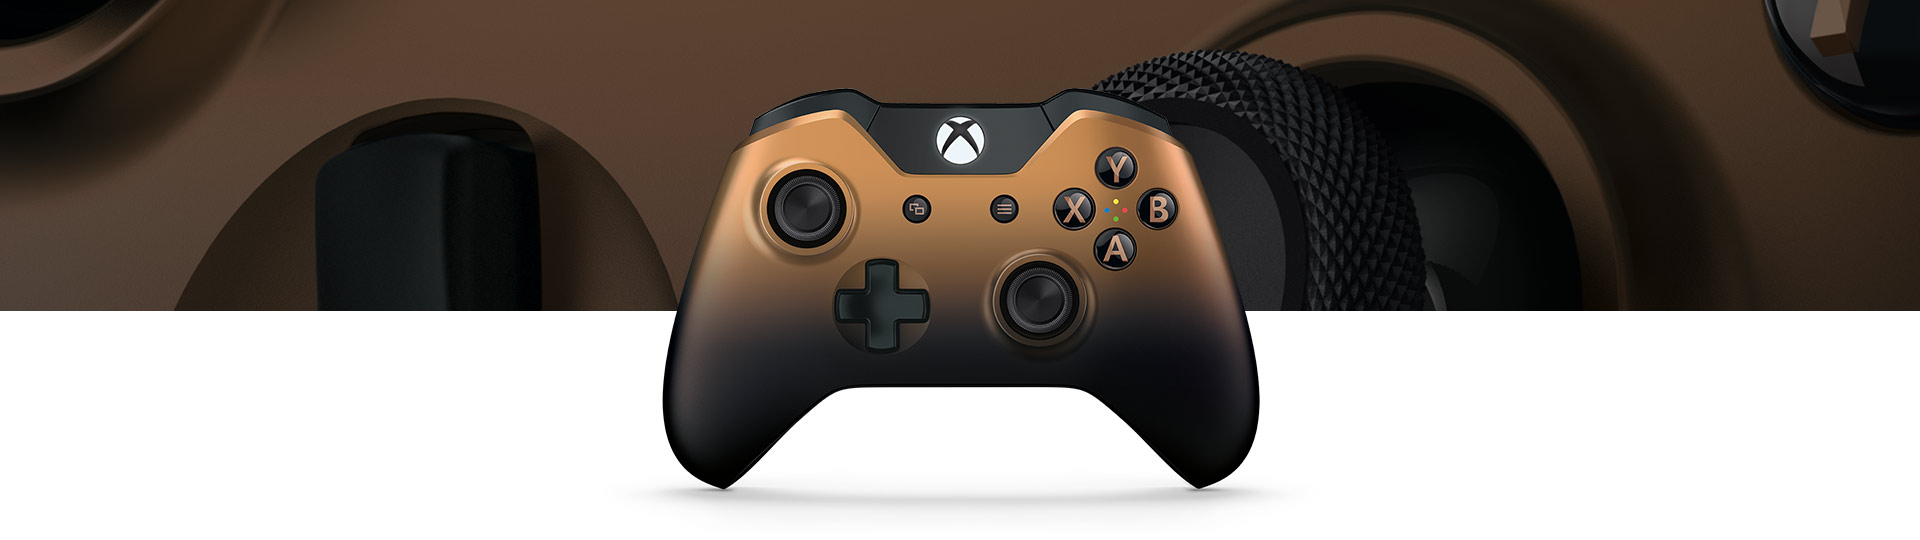 Control inalámbrico Copper Shadow edición especial para Xbox One